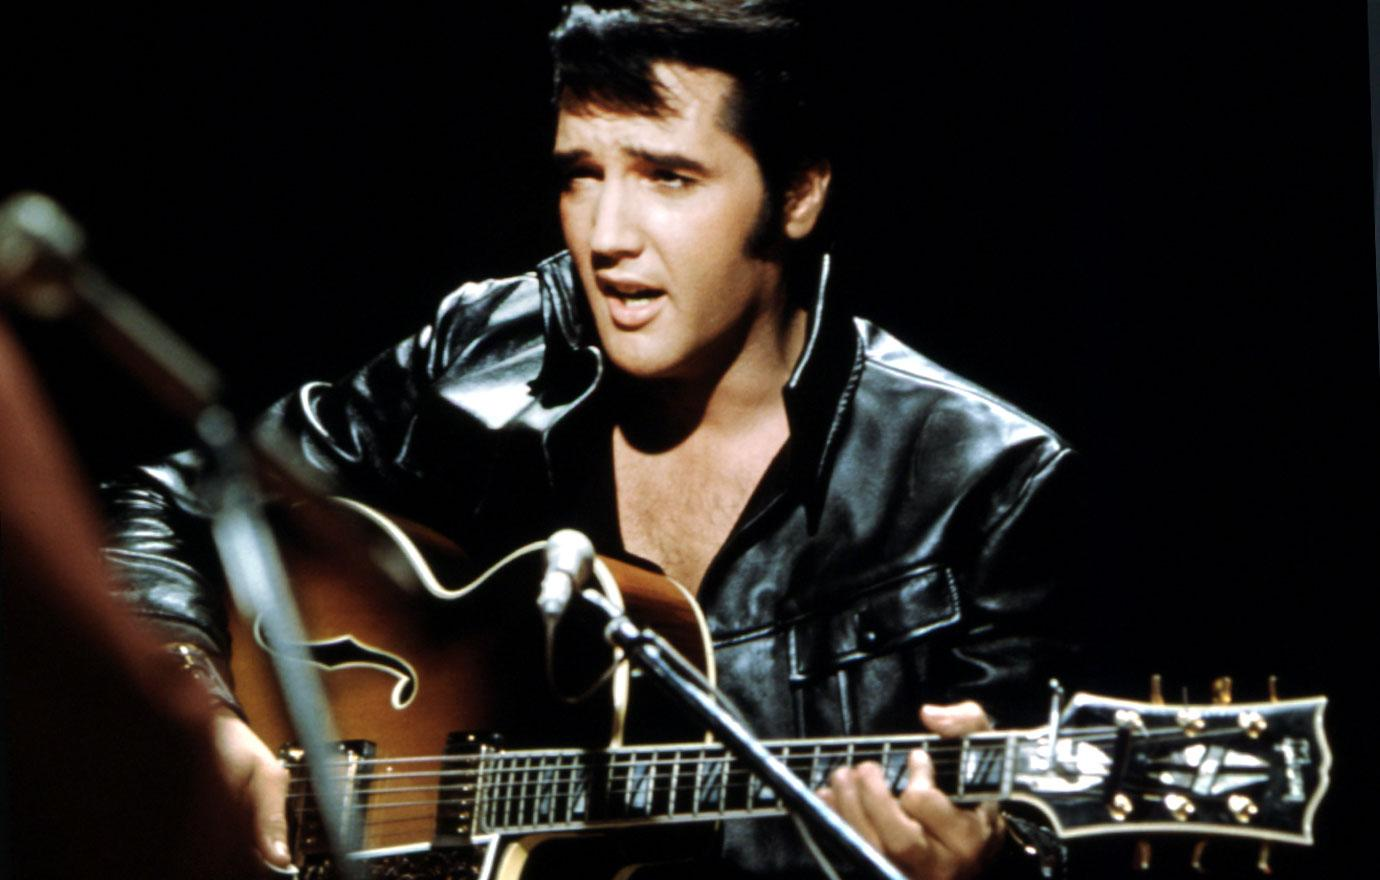 elvis autopsy death documents exposed